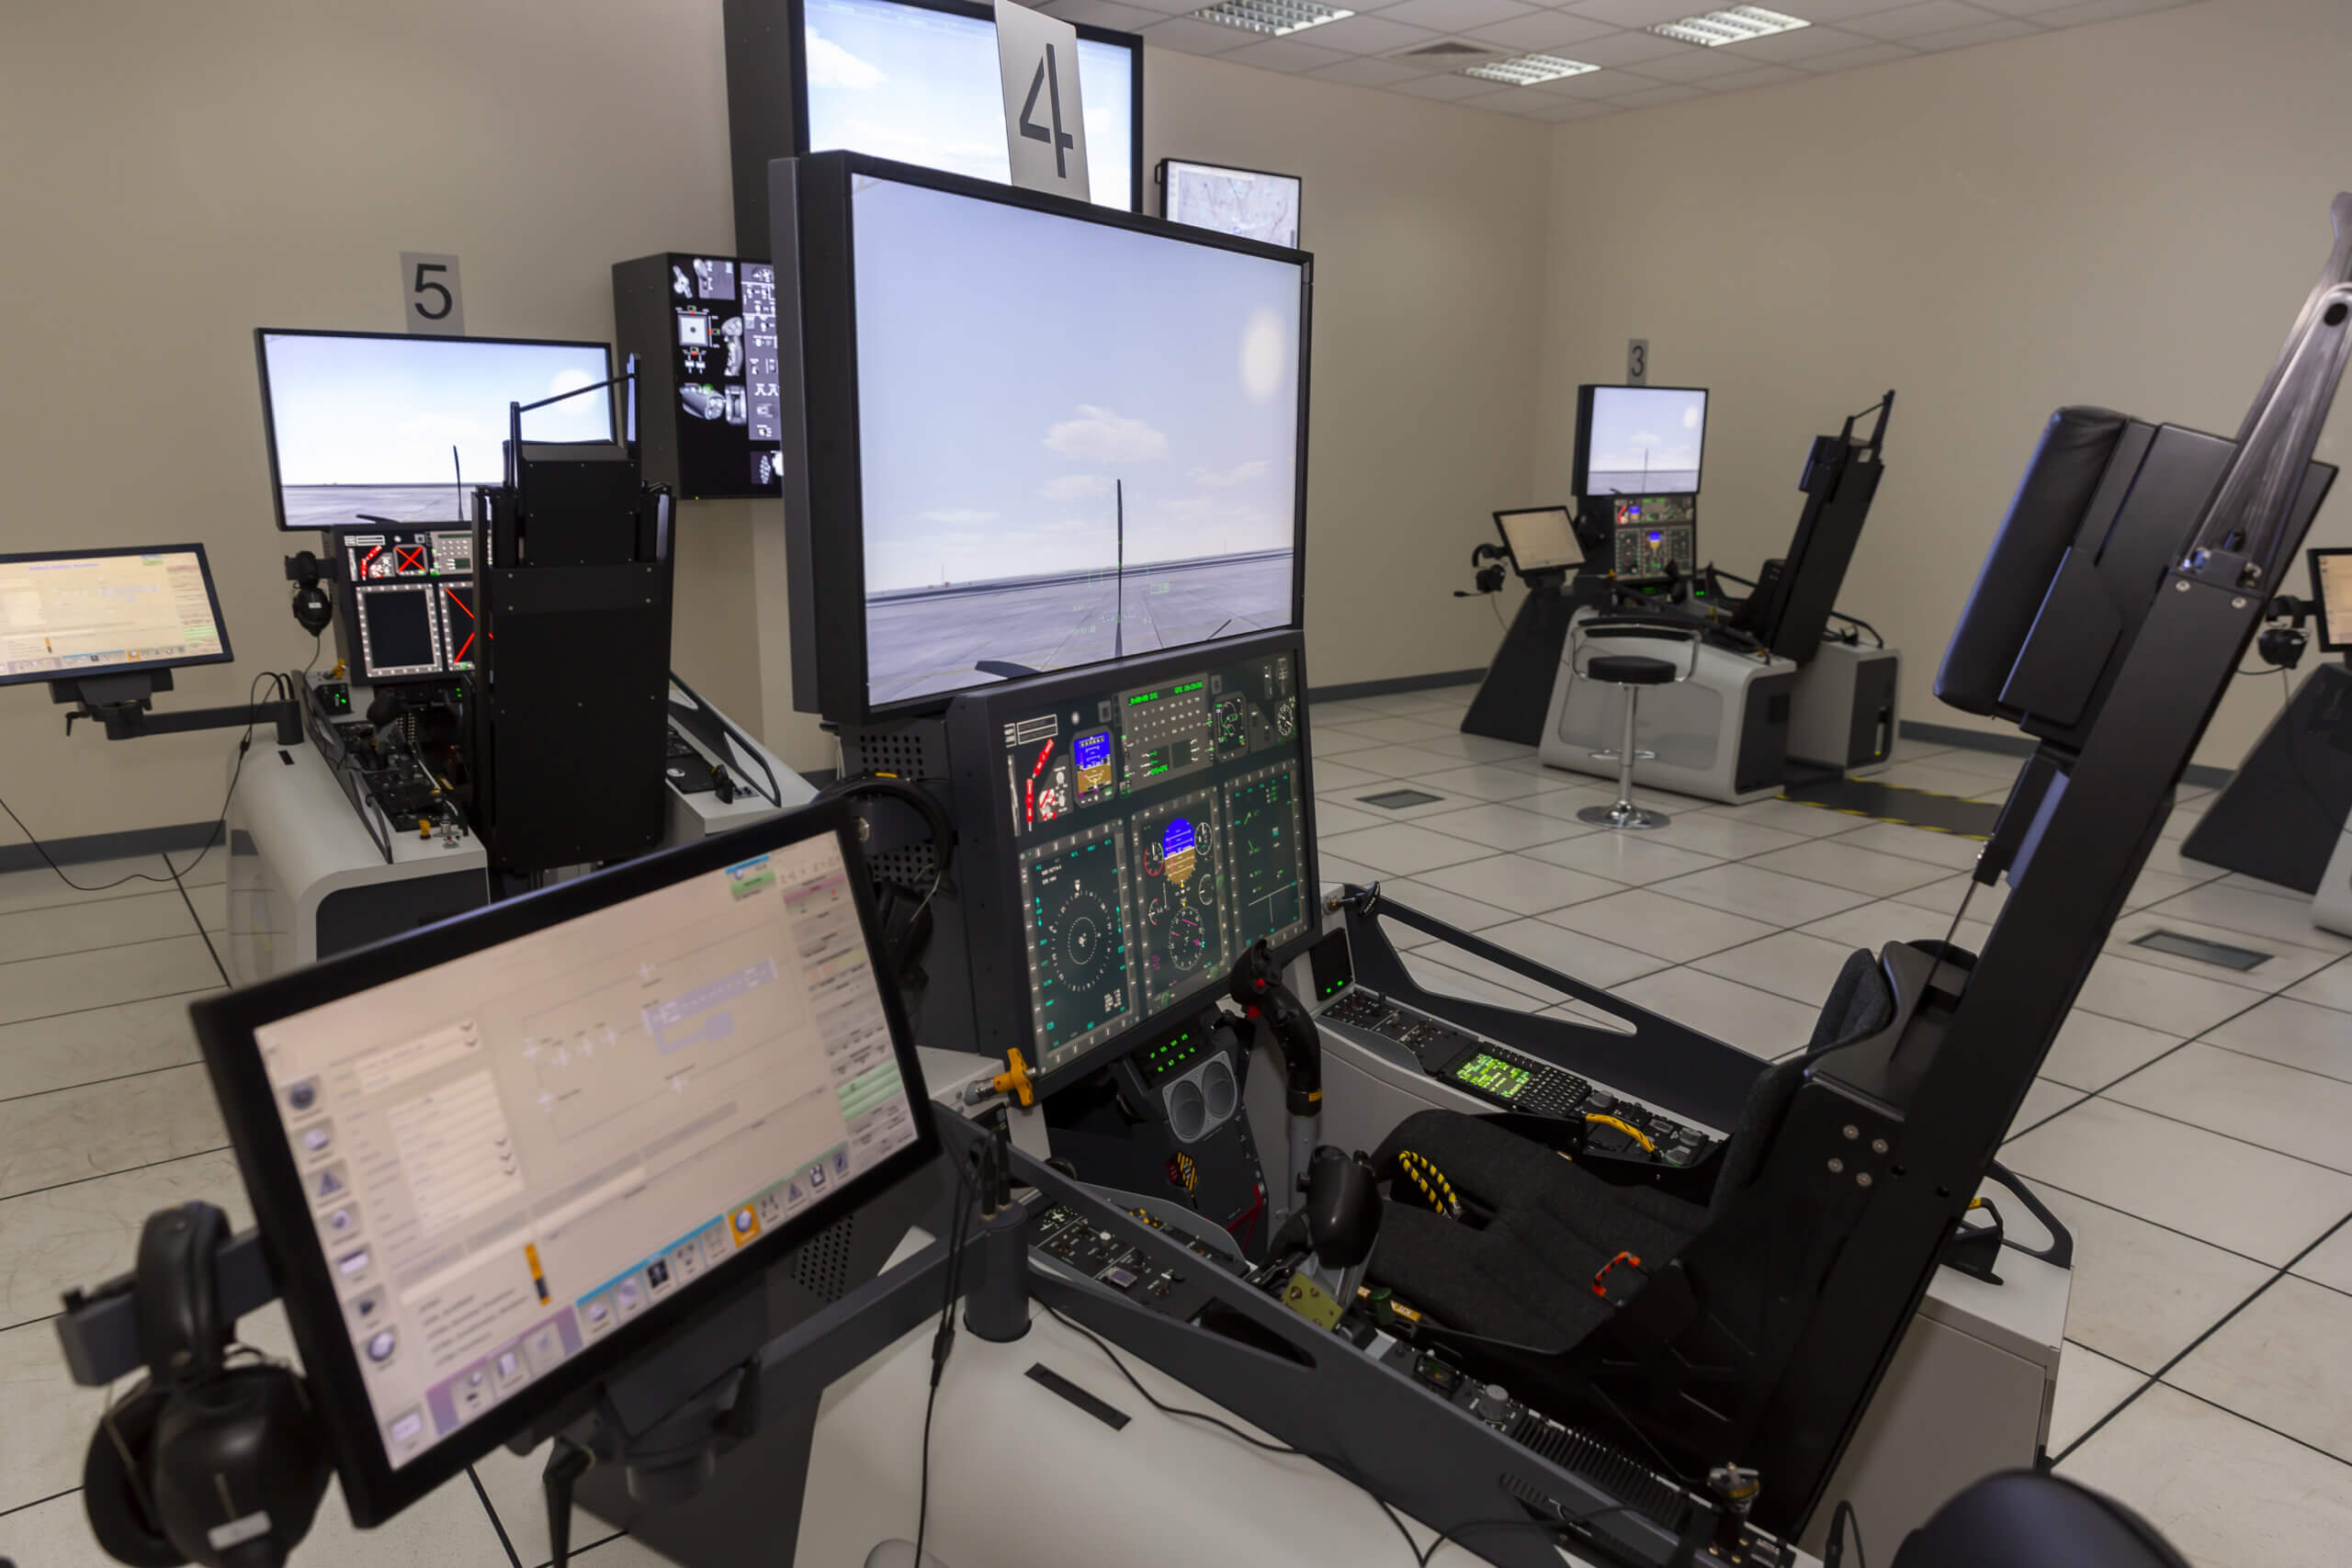 Image of fighter aircraft simulator training room with multiple screens and controls to practice test environment simulation